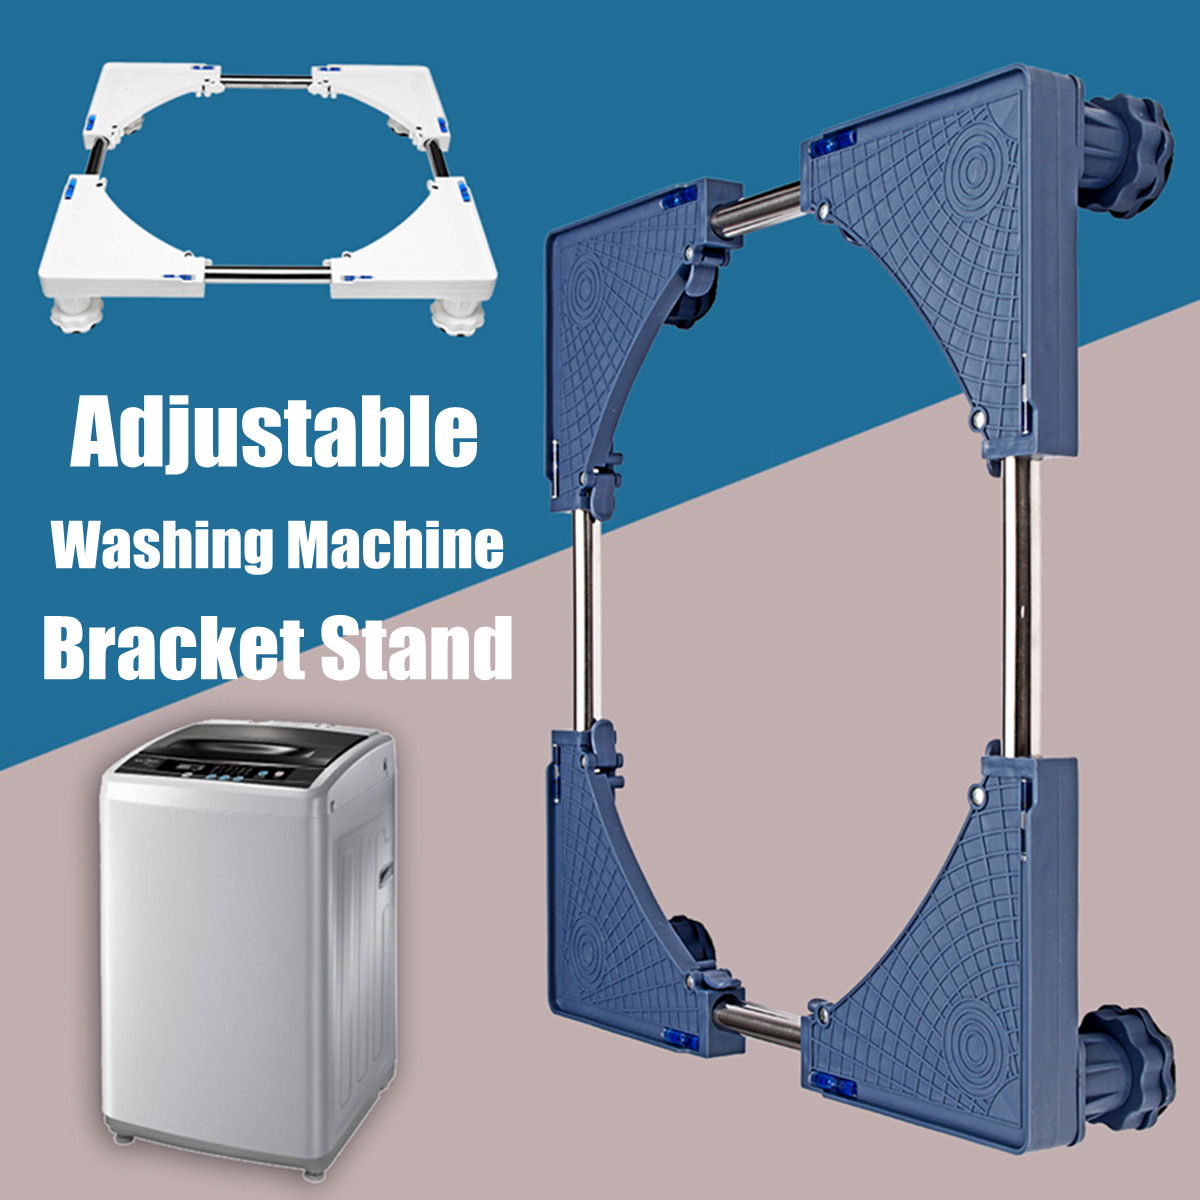 Adjustable 4 Foot Refrigerator Undercarriage Bracket Stand Washing Machine Base